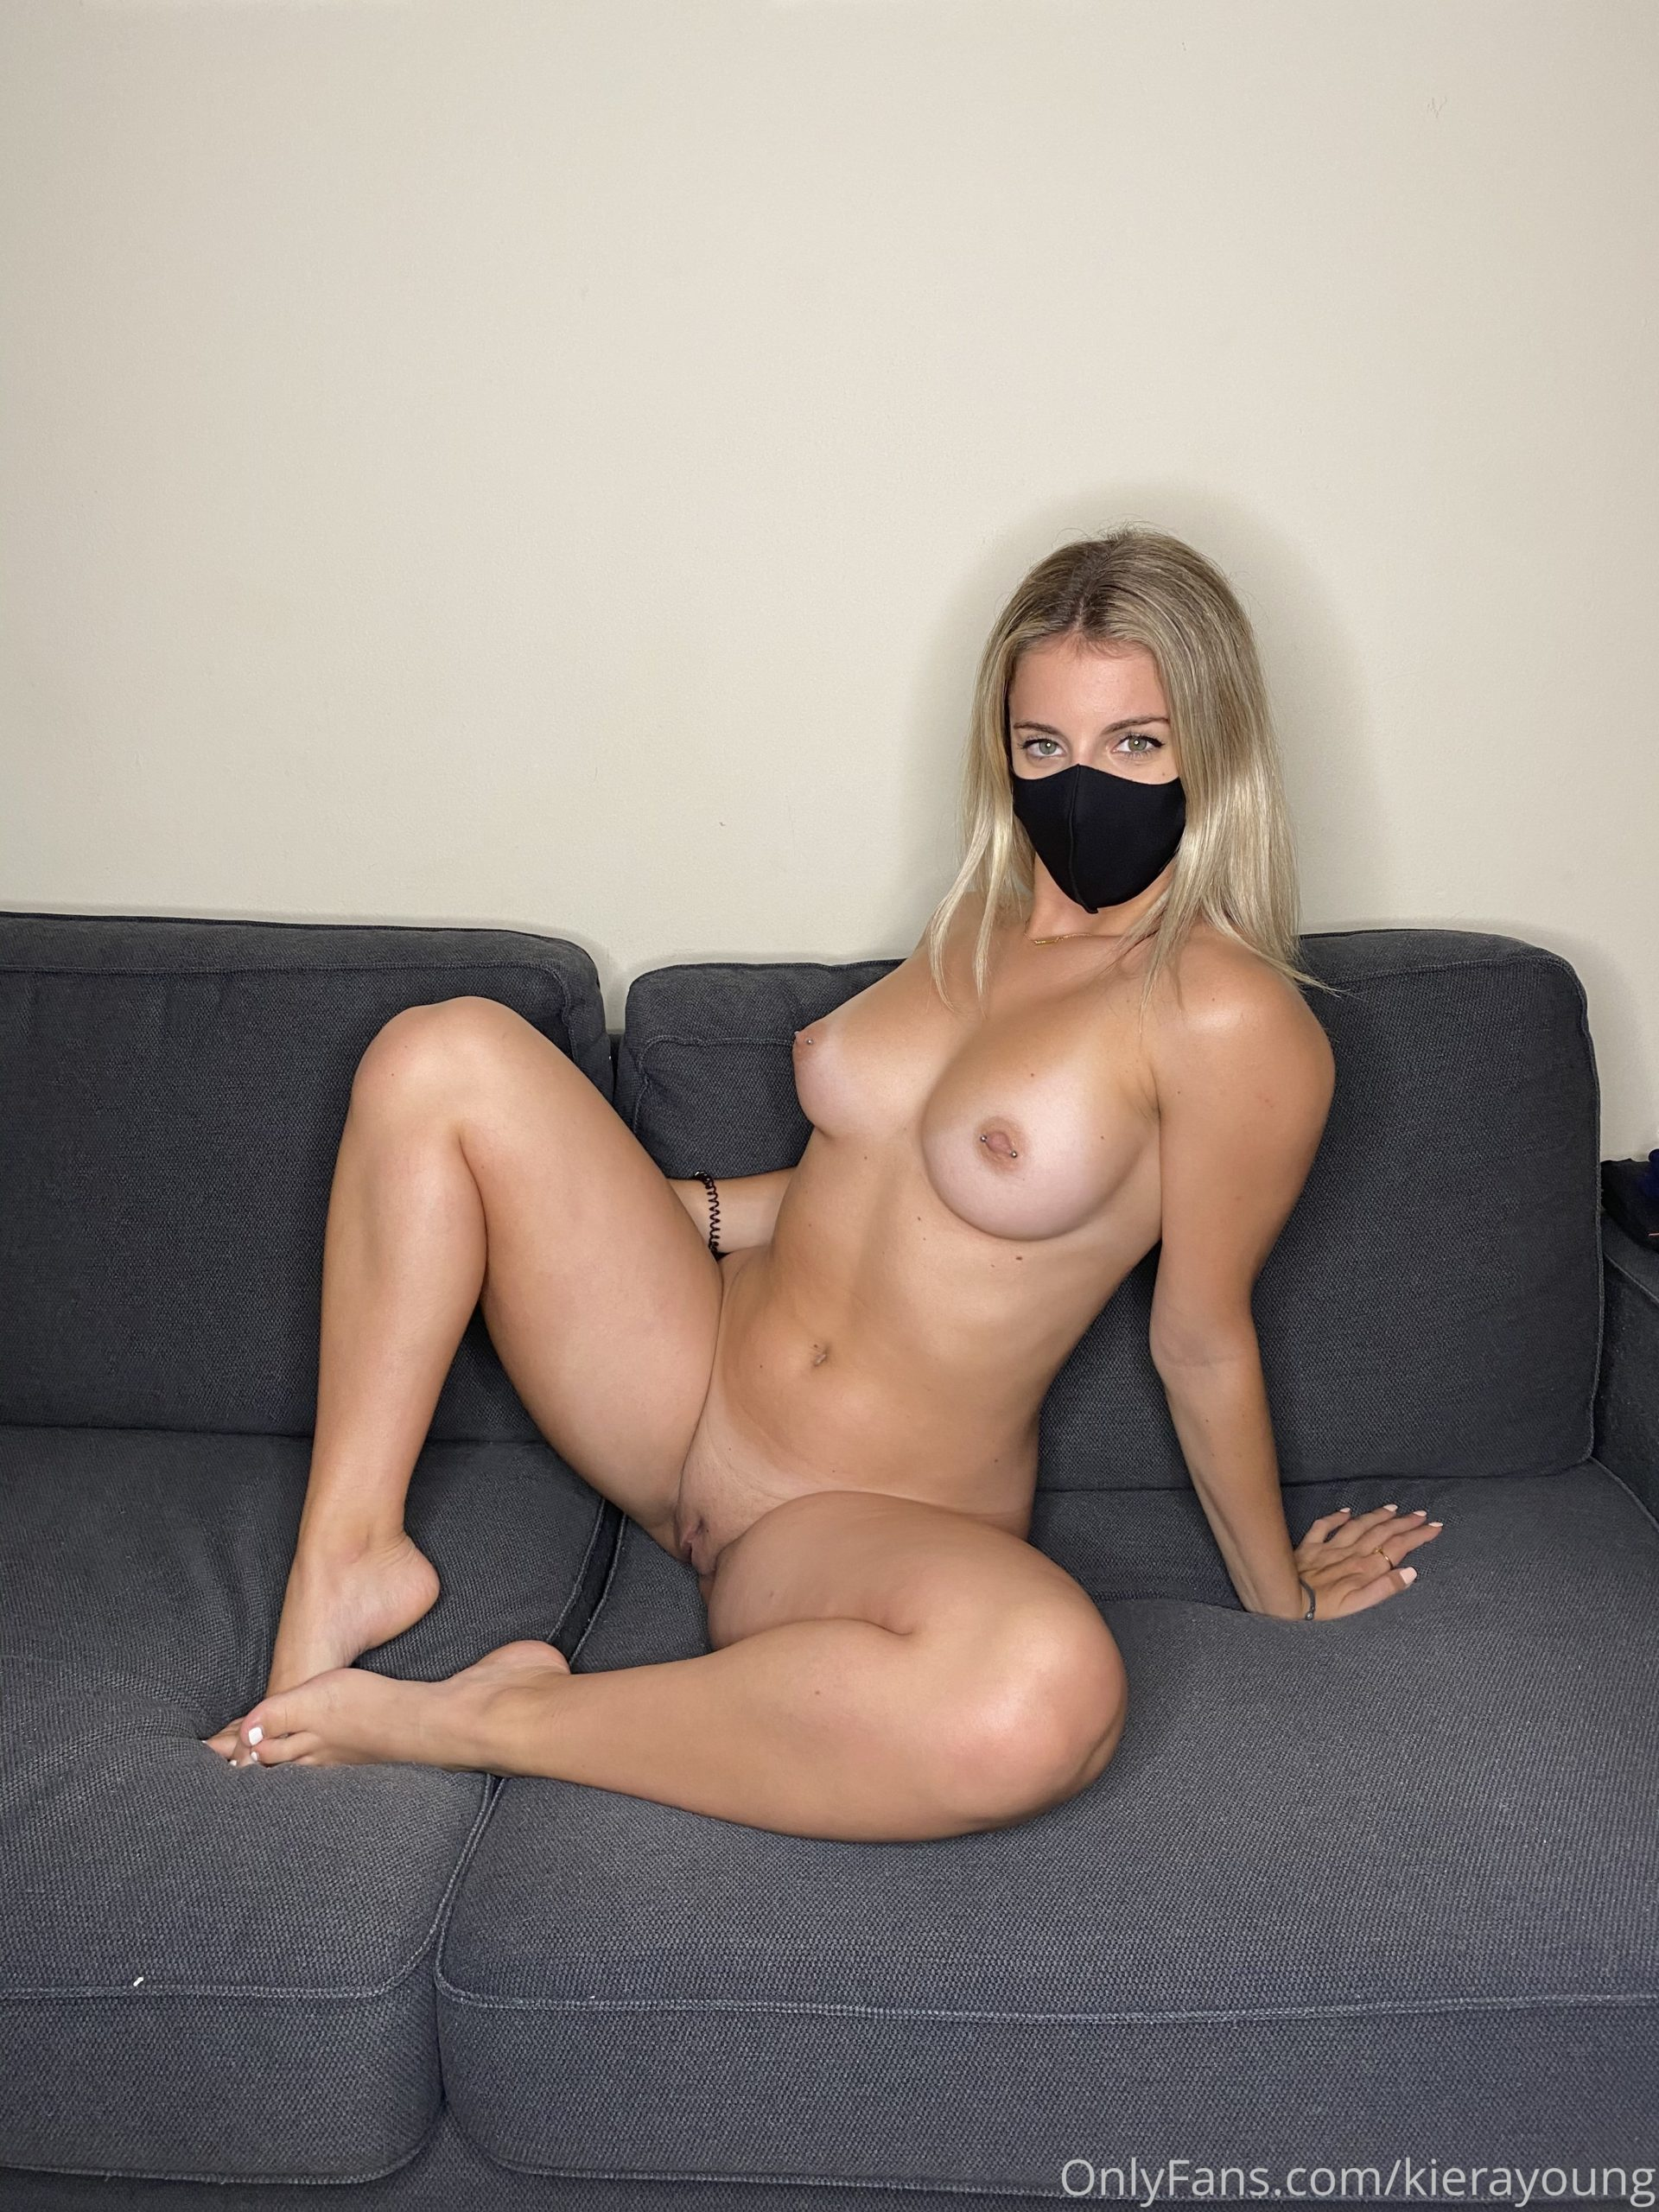 Kiera Young Latest Onlyfans Nude Gallery Leaked